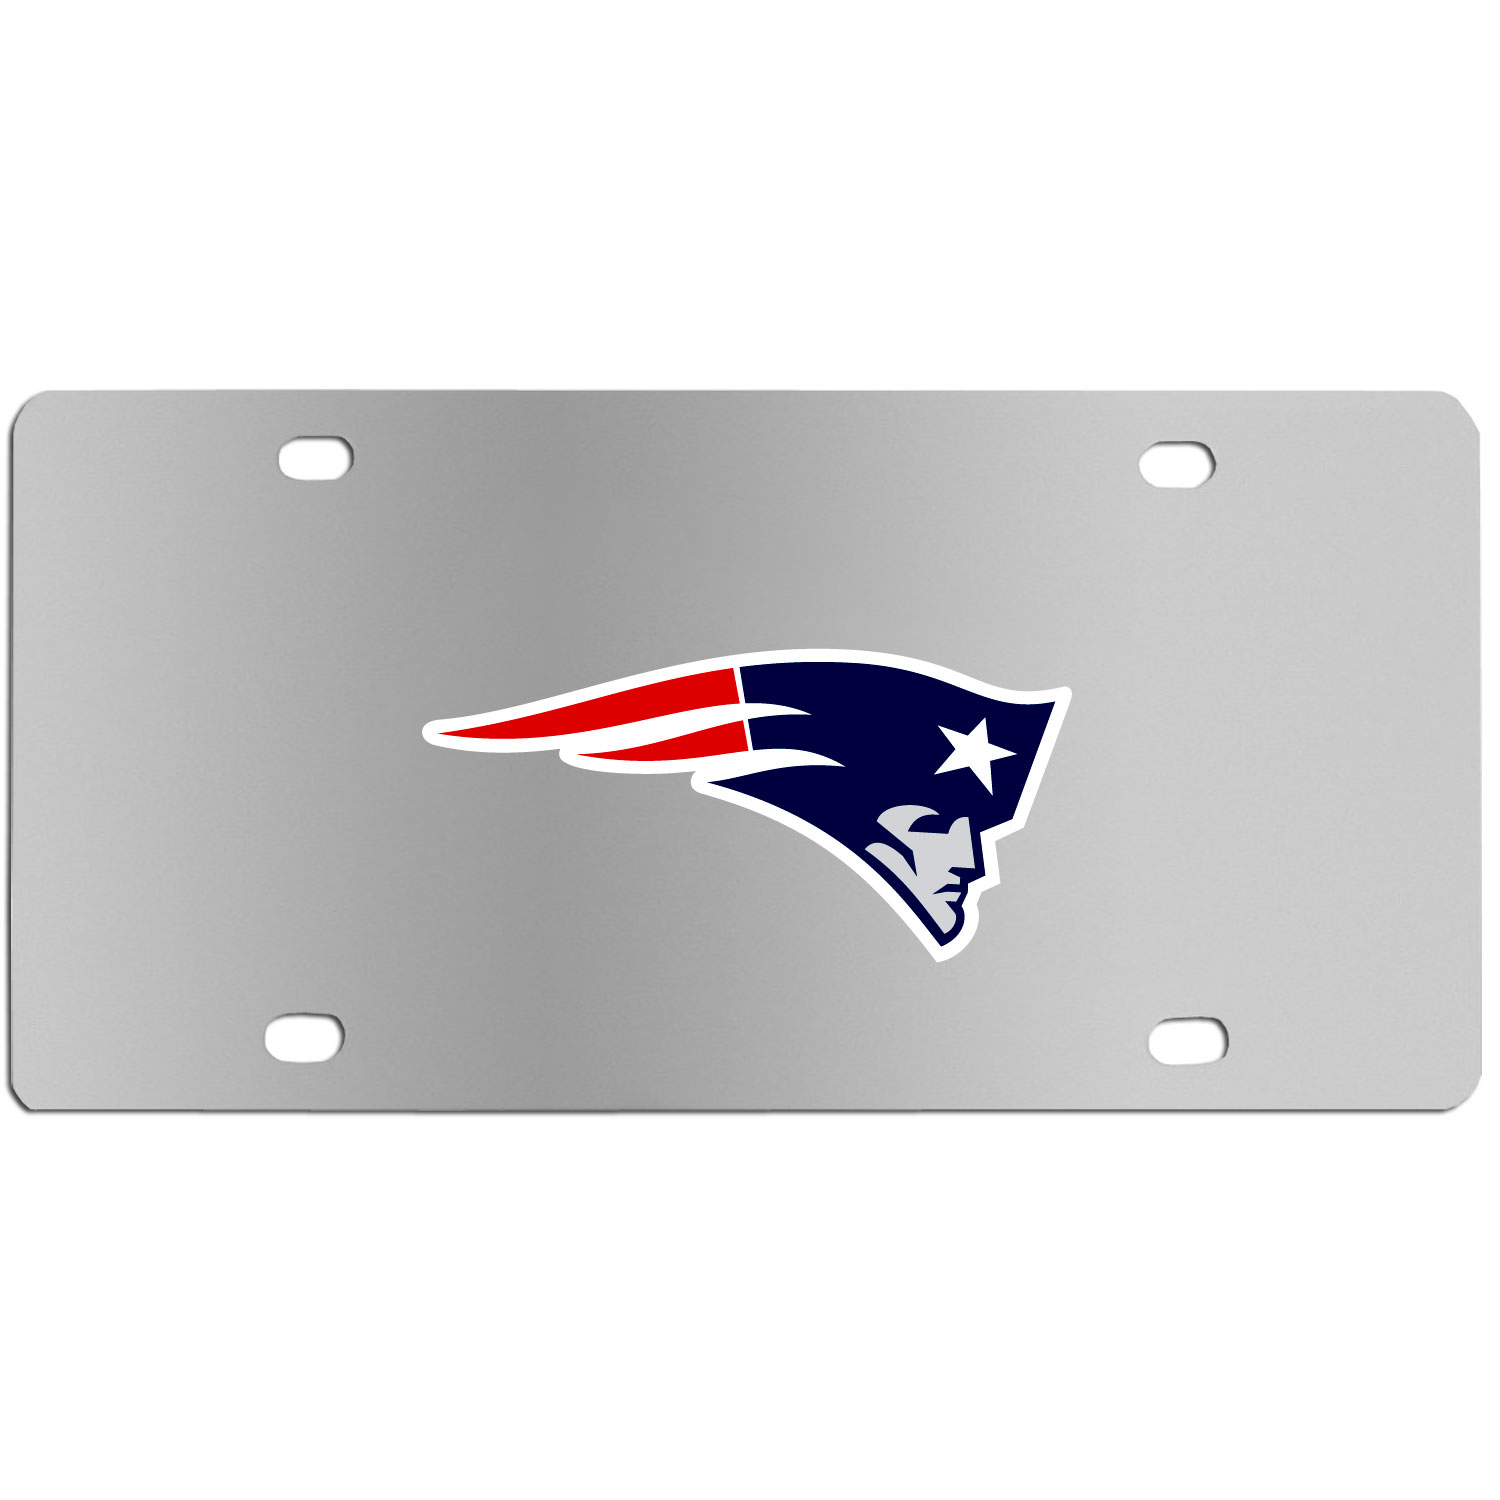 New England Patriots Steel License Plate Wall Plaque - This high-quality stainless steel license plate features a detailed team logo on a the polished surface. The attractive plate is perfect for wall mounting in your home or office to become the perfect die-hard New England Patriots fan decor.